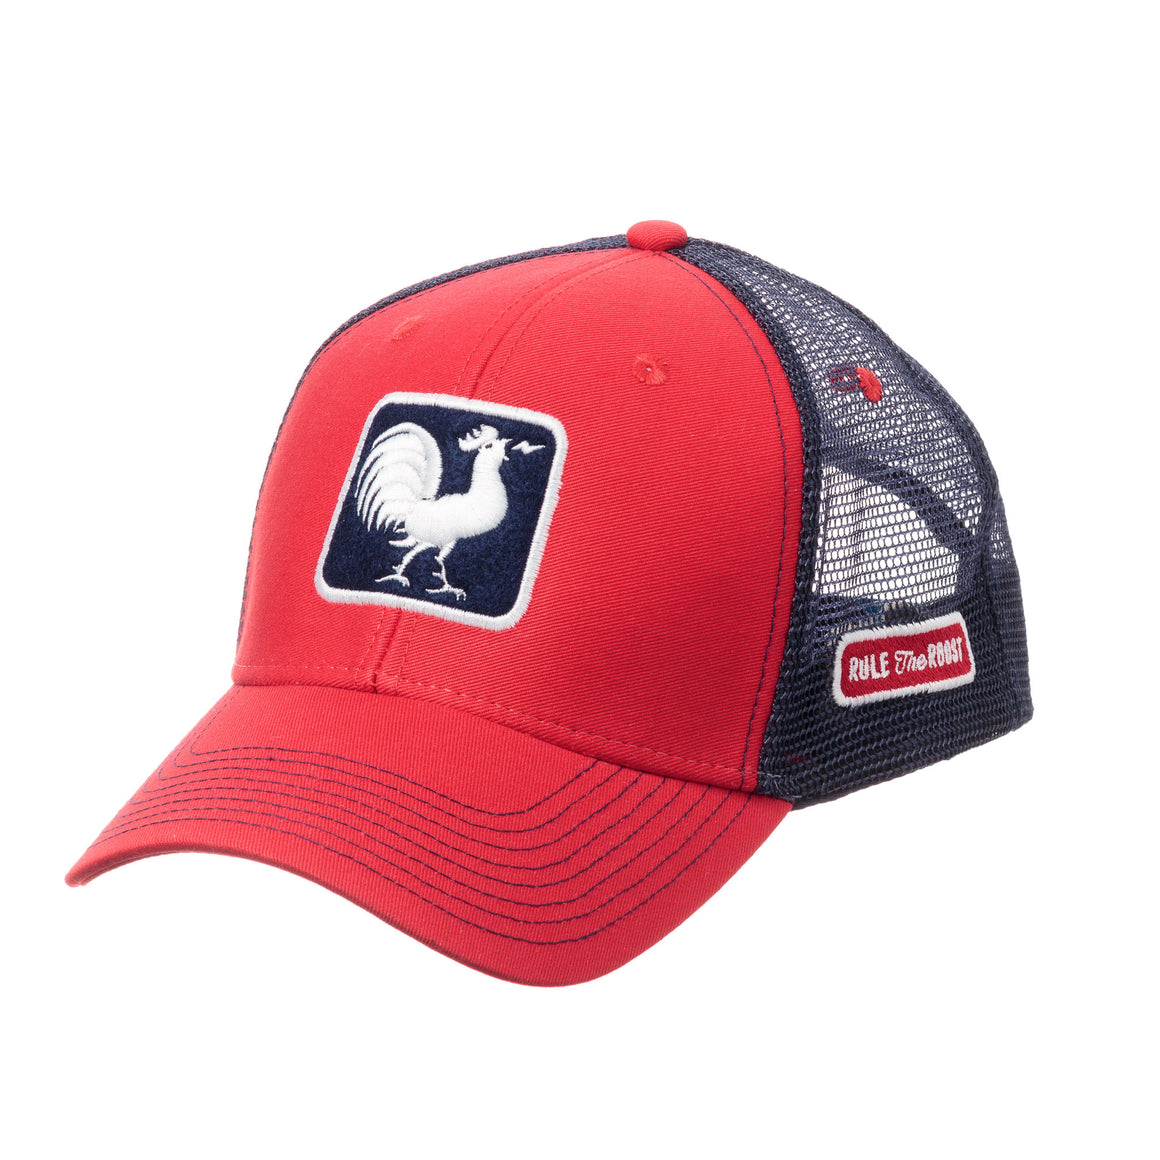 Original Rooster Trucker Hat - Red